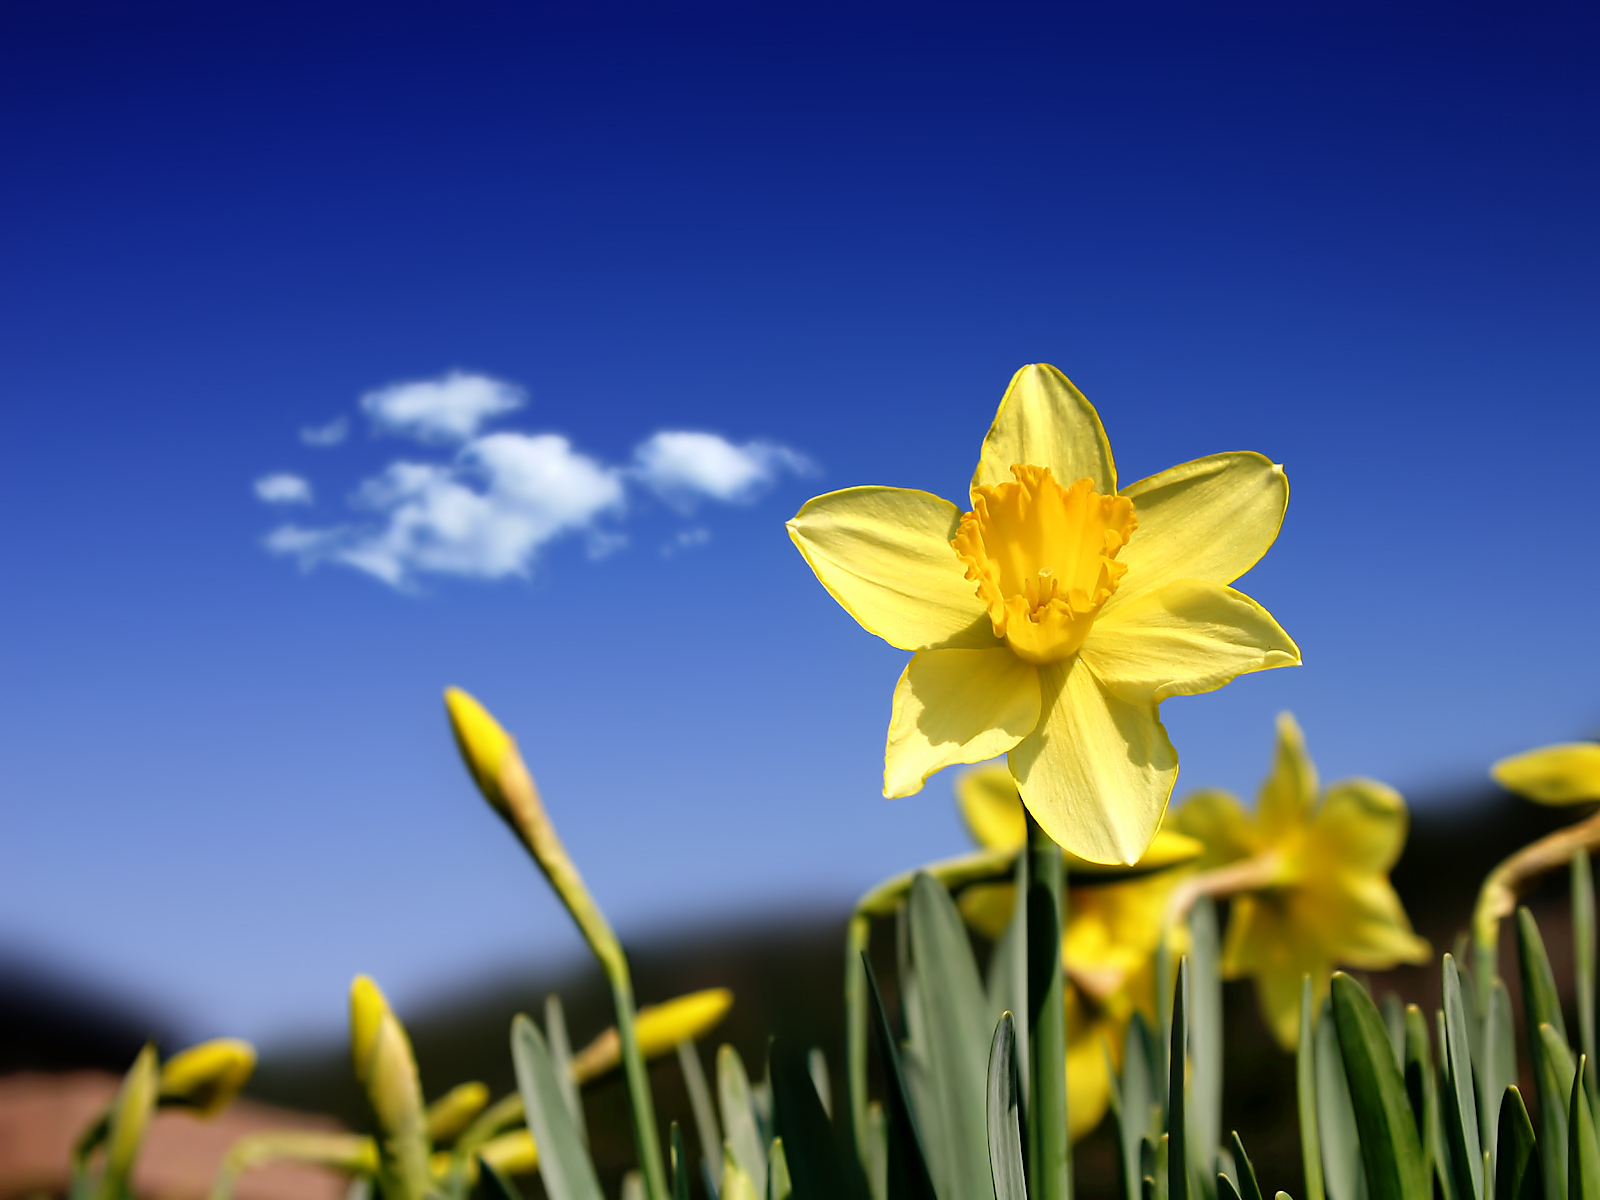 Google images daffodils picture stock Pretty Daffodil Wallpapers, Images, Wallpapers of Pretty Daffodil ... picture stock